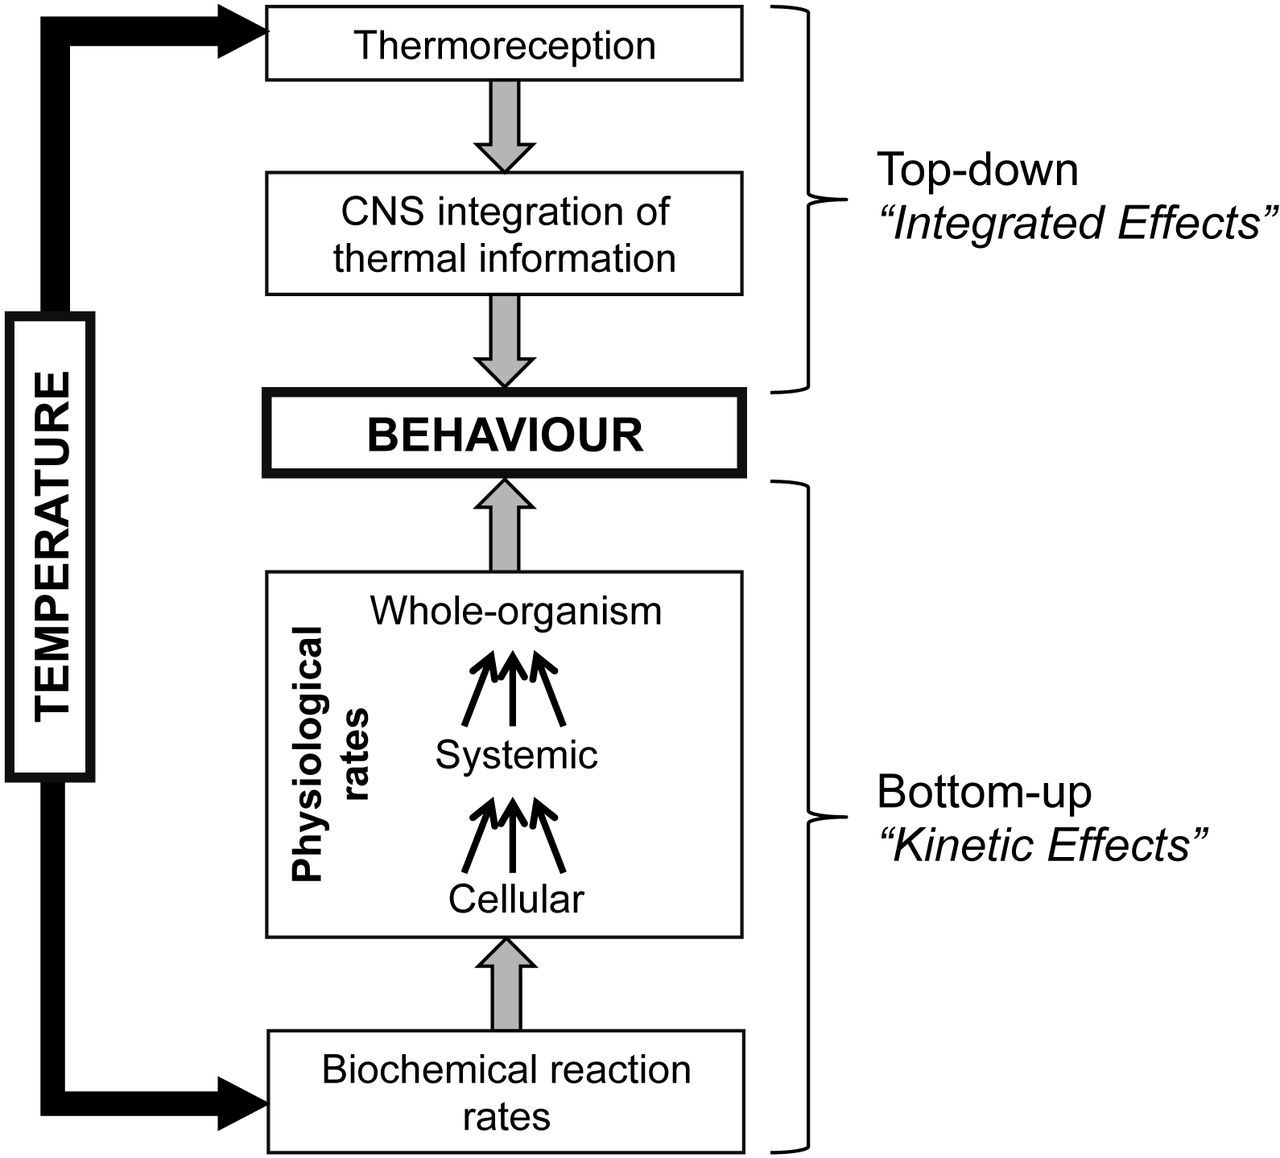 Behavioural effects of temperature on ectothermic animals